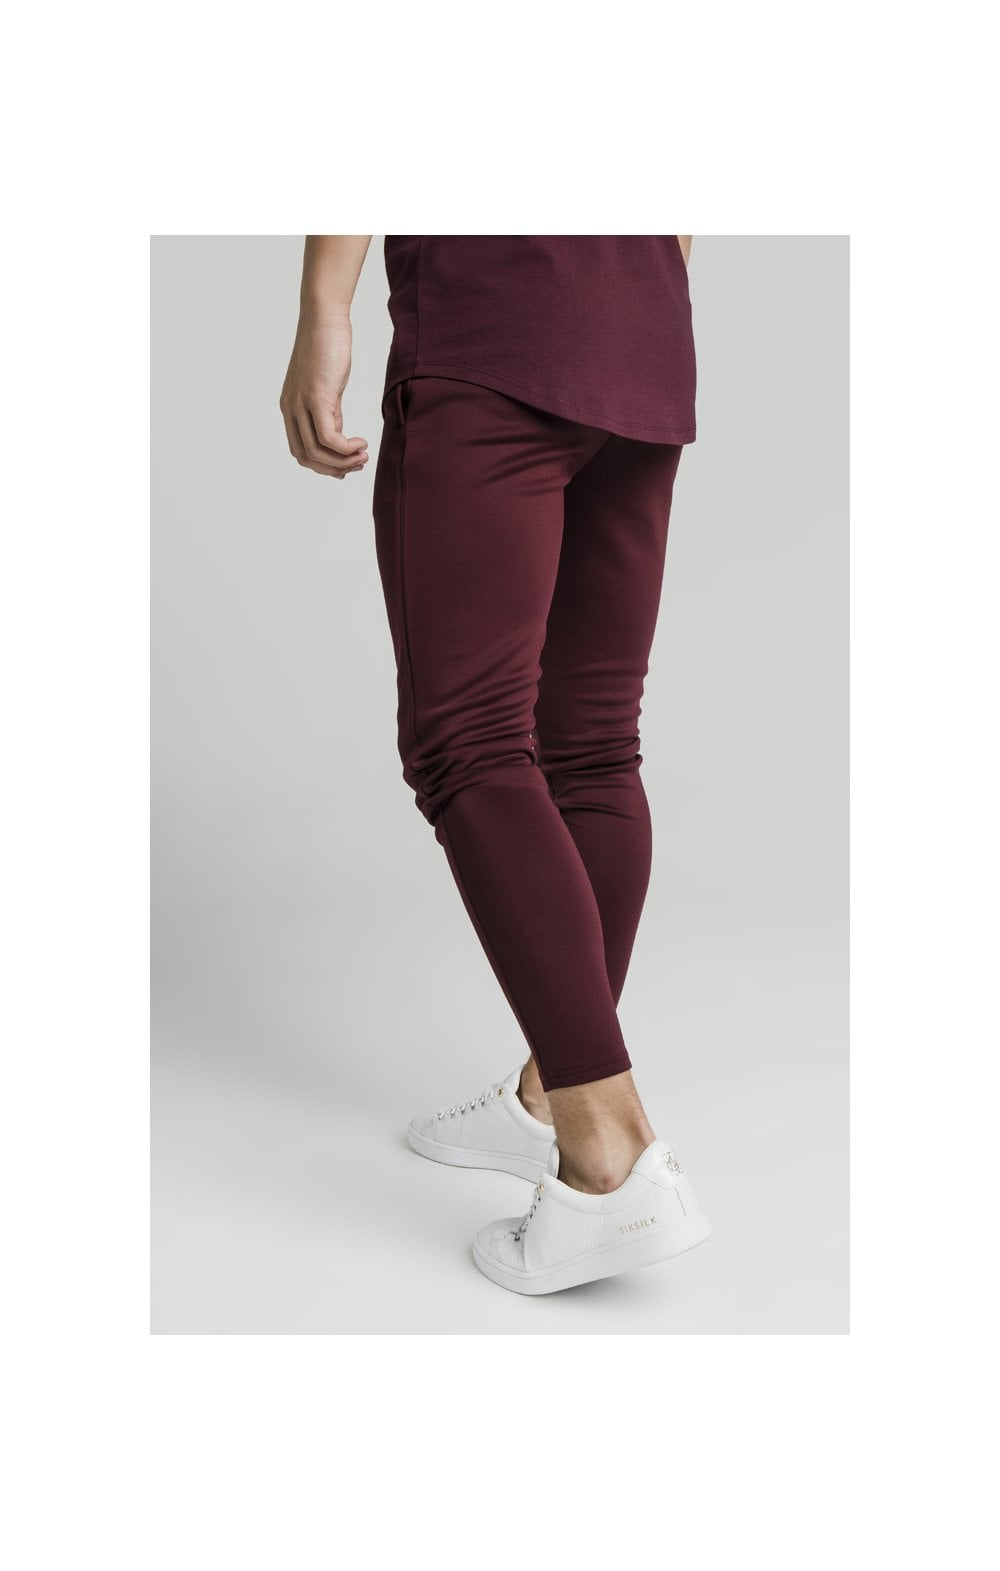 Illusive London Agility Track Pants - Burgundy (3)